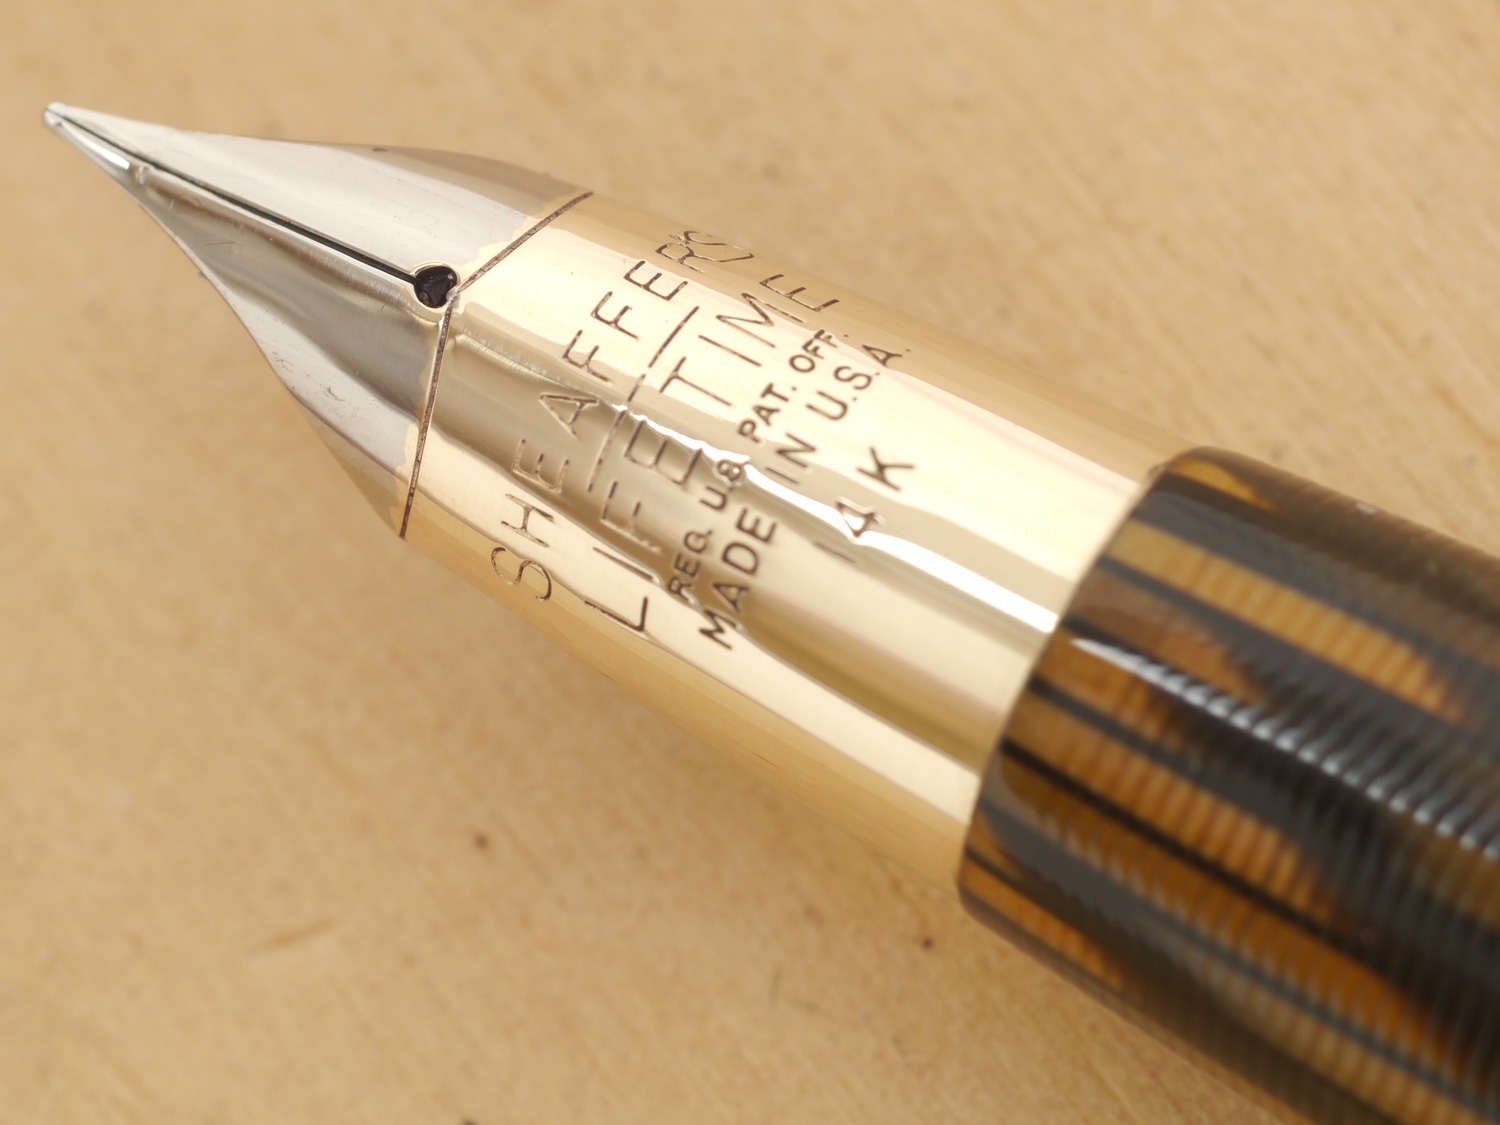 Sheaffer Triumph Valiant Oversize Fountain Pen and Pencil Set, Golden Brown, XF, nib tune-up